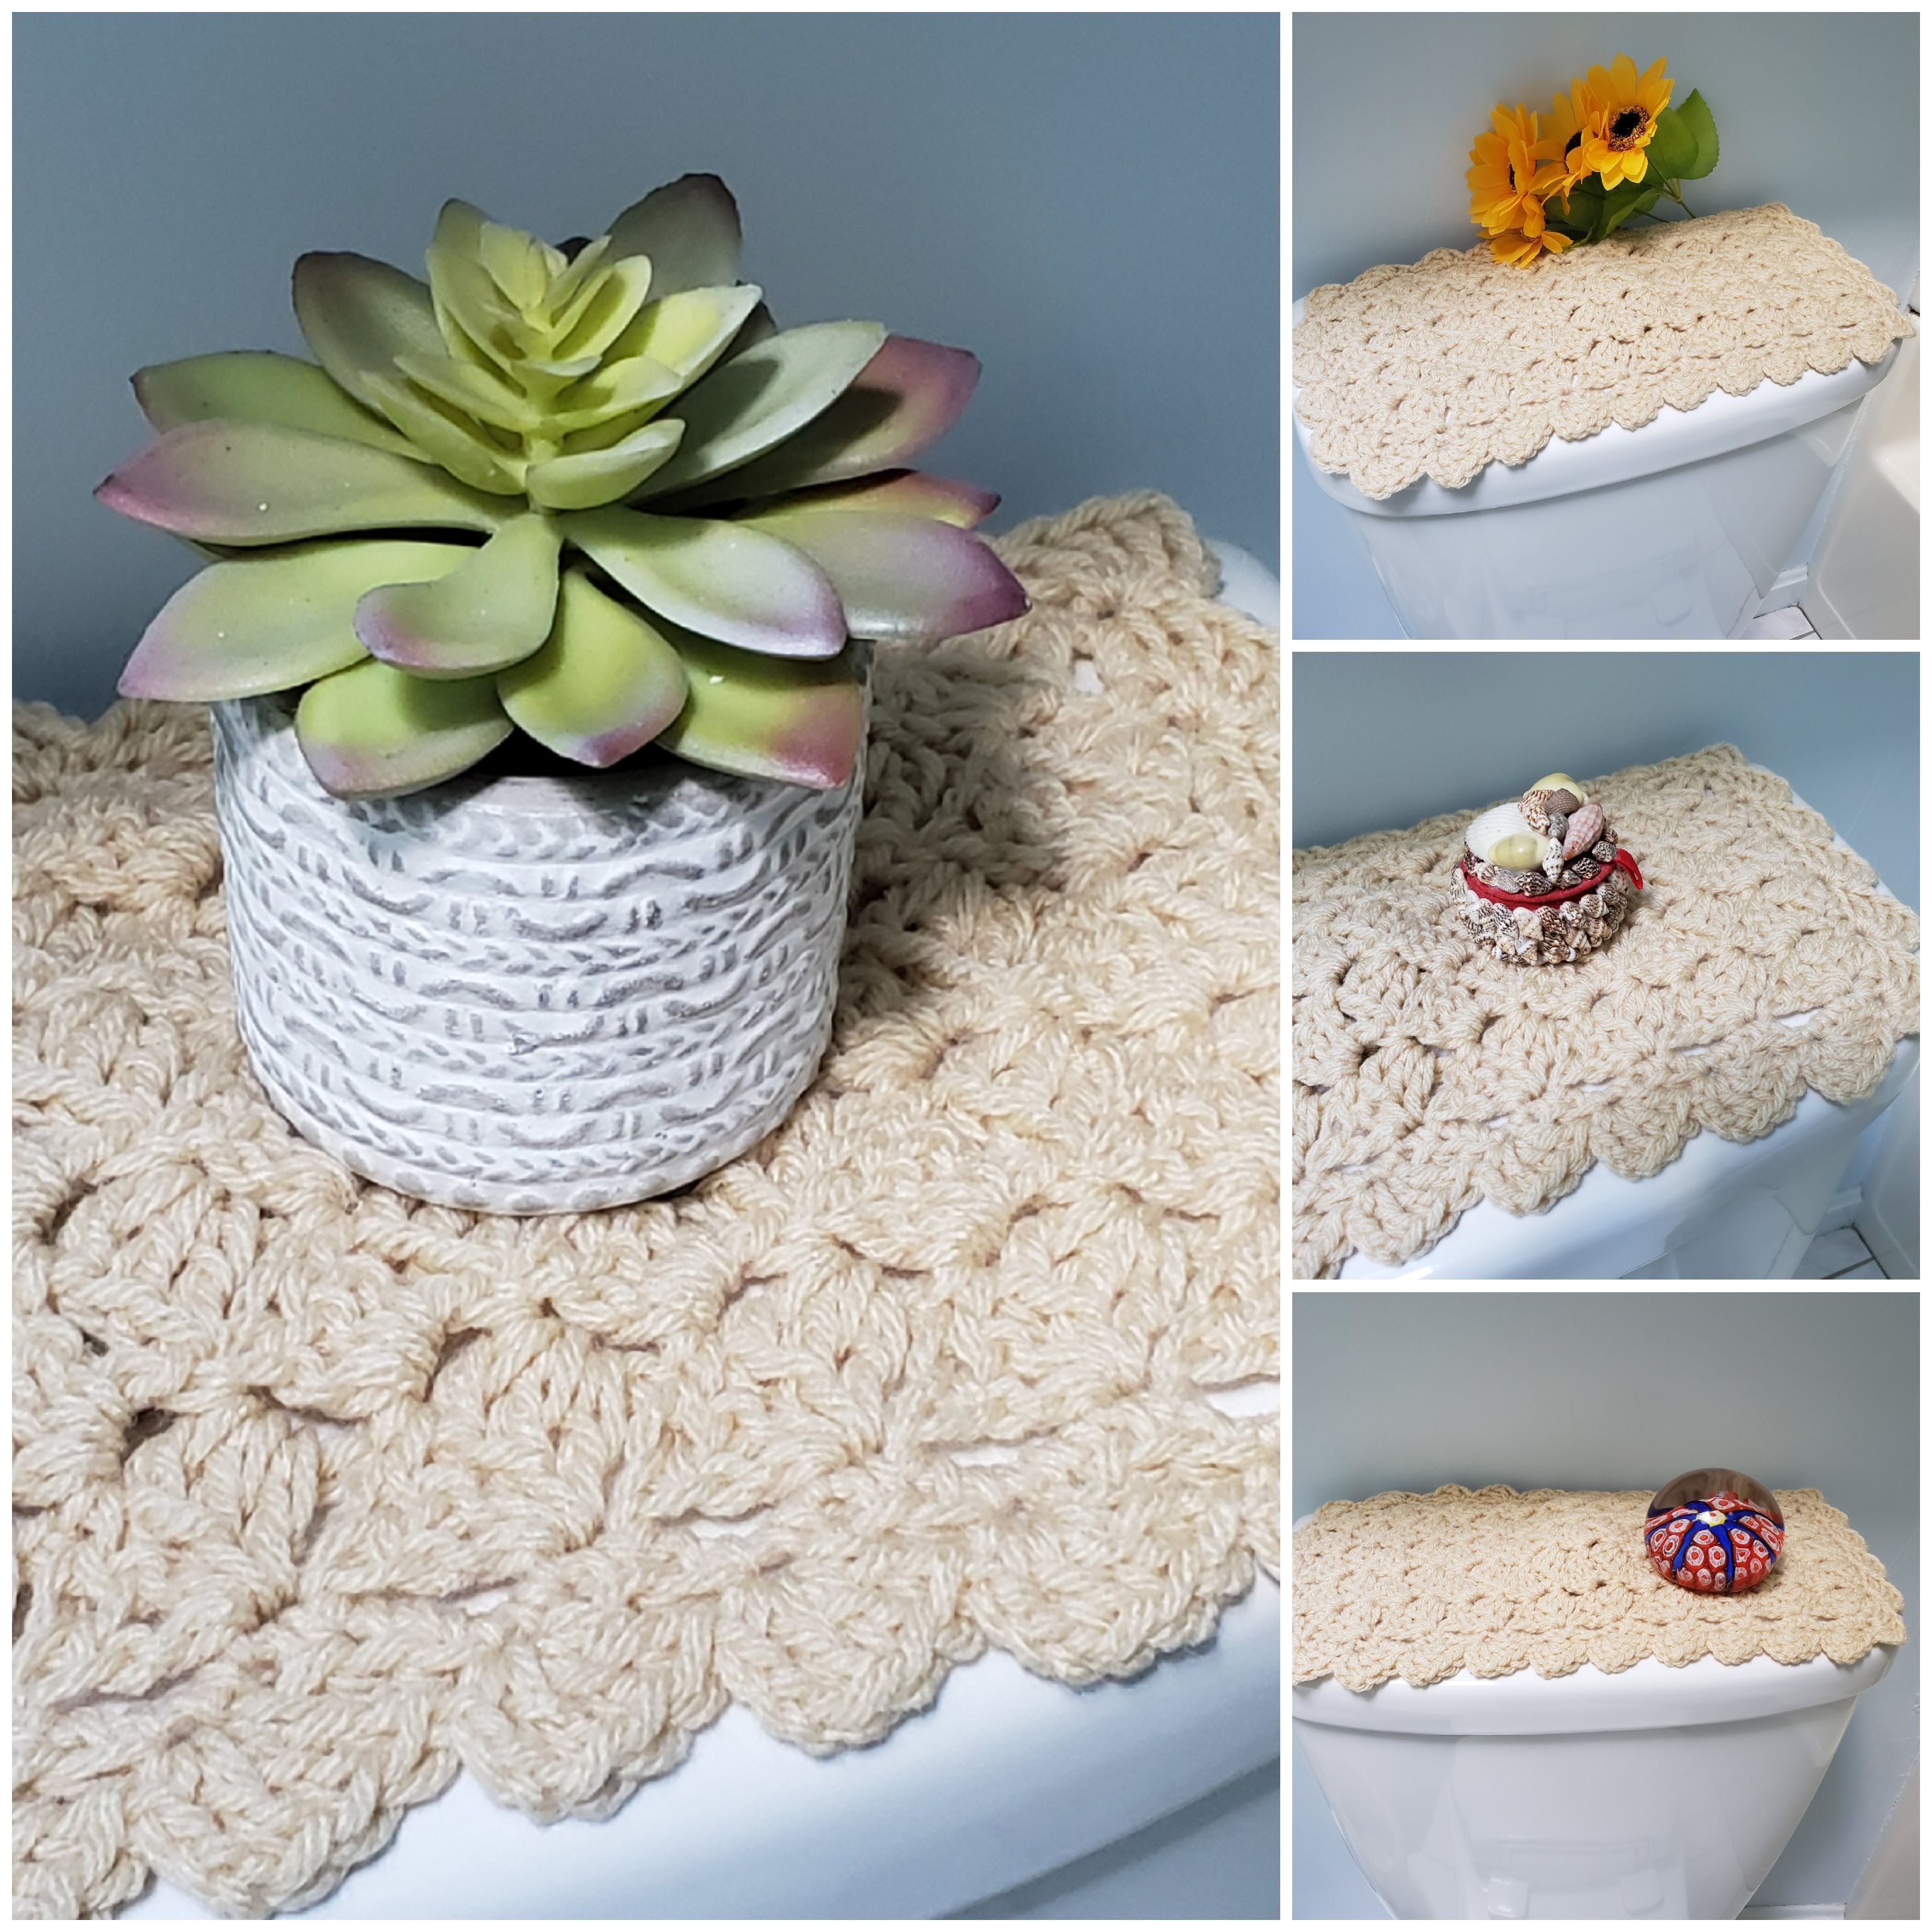 Toilet Tank Topper Crochet Toilet Tank Topper Bathroom Decor Oatmeal Ttt1m With Images Crafts To Make And Sell Crafts To Make Diy Craft Projects